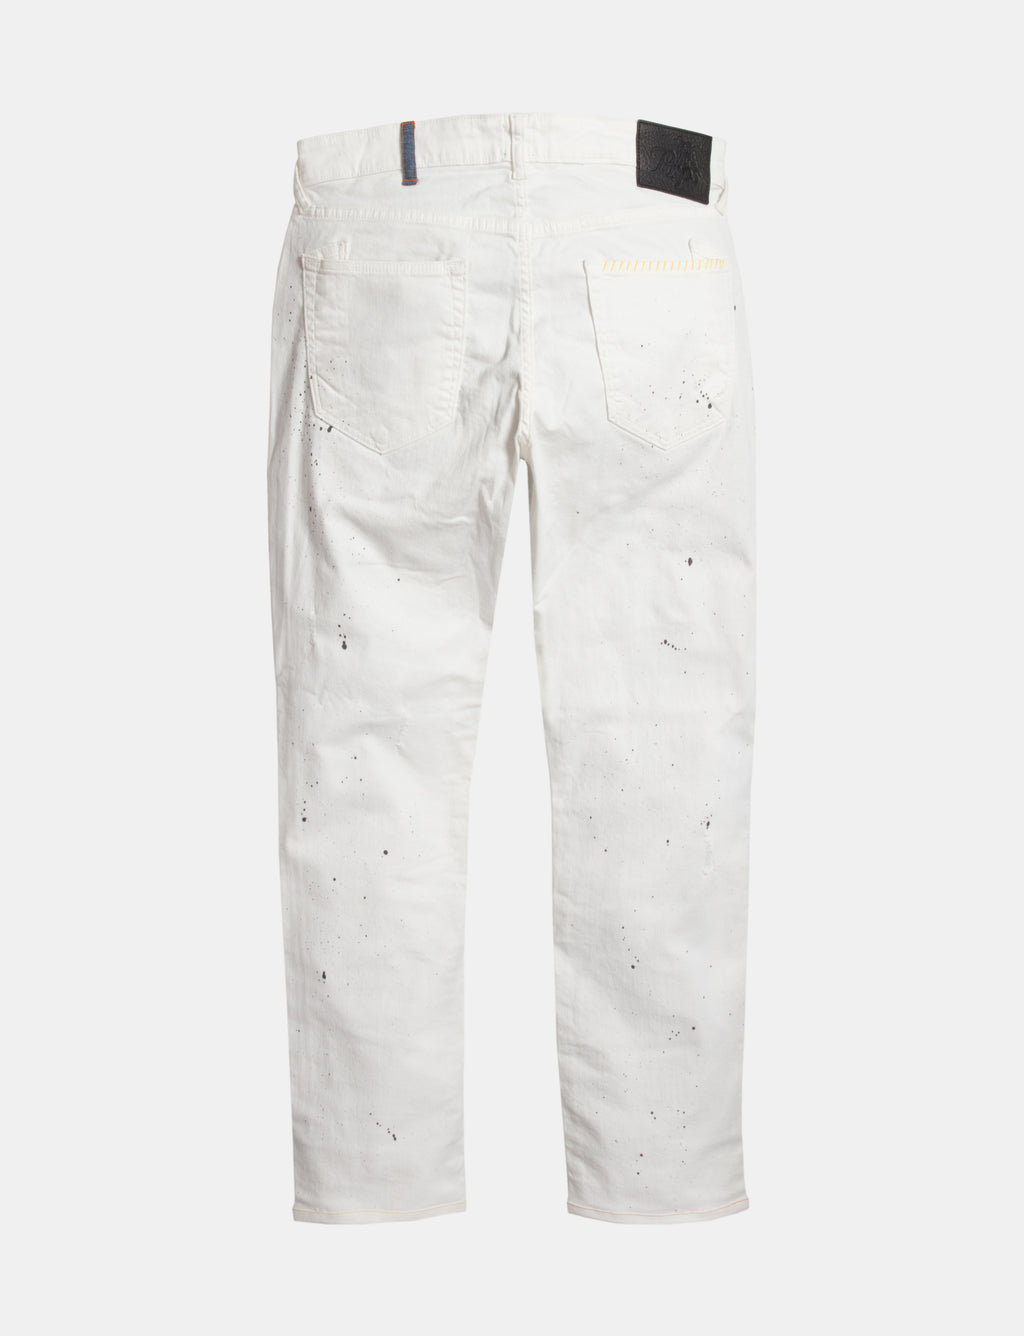 Prps - Prps X Atelier & Repairs Re-Purposed Windsor White #2 - Jeans - Prps